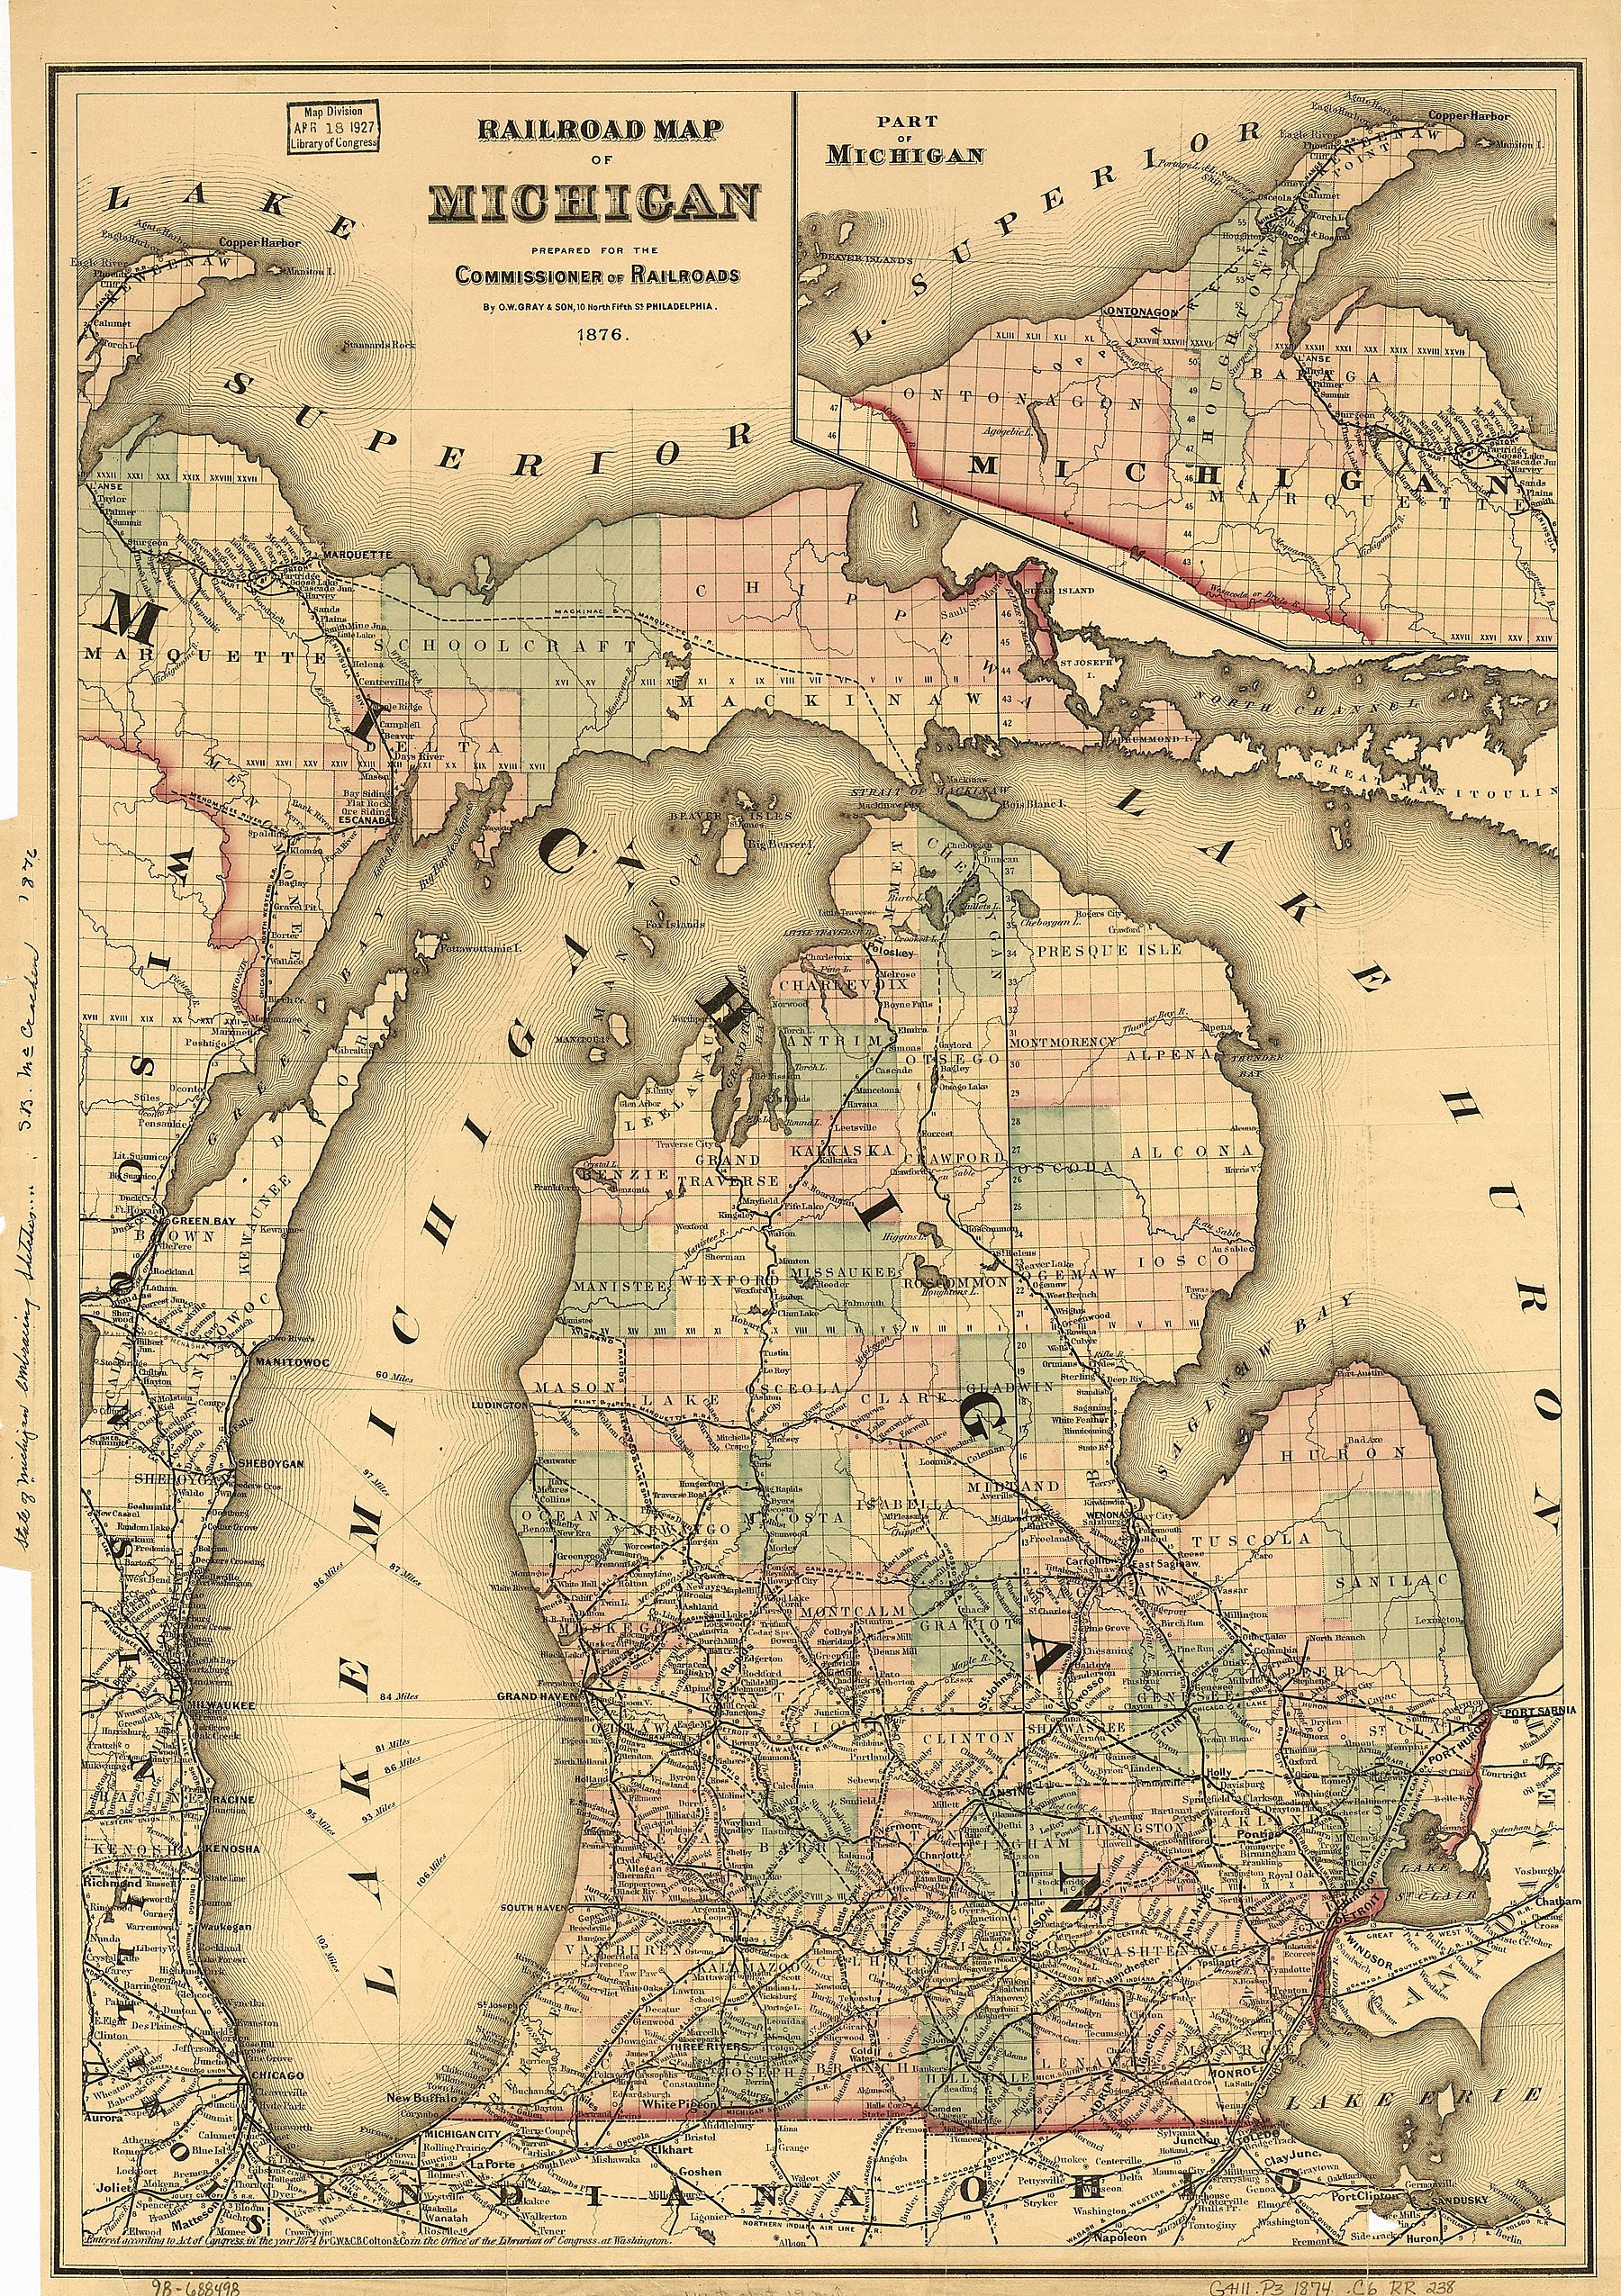 By 1876, the Grand Rapids and Indiana Railroad had built a line north to Petoskey. Petoskey became the county seat of Emmet County in 1902.[9]